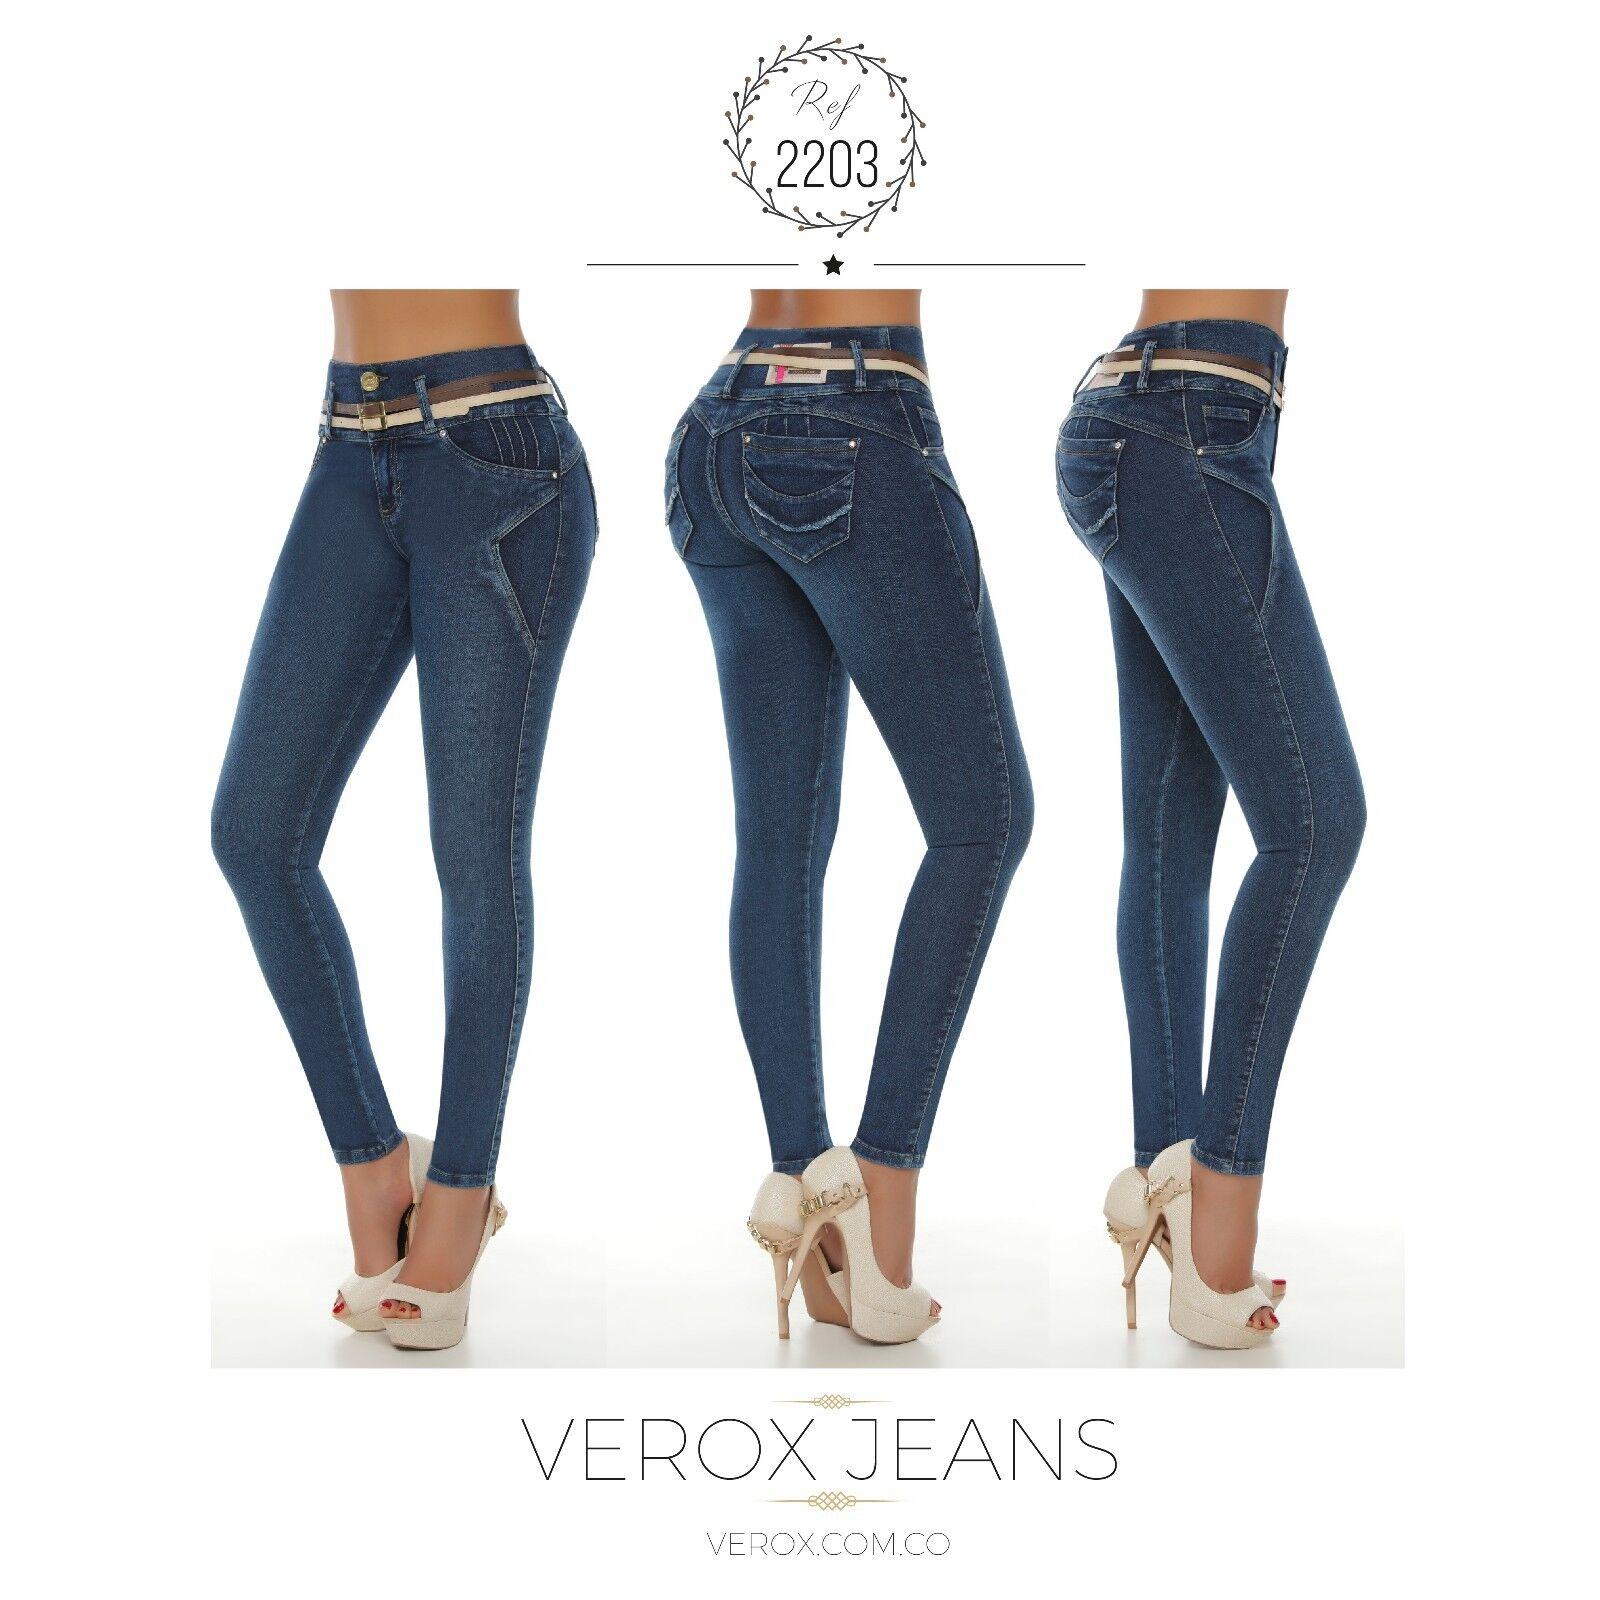 Verox Jeans colombianos butt lifter fajas colombianas jeans levanta cola 2203